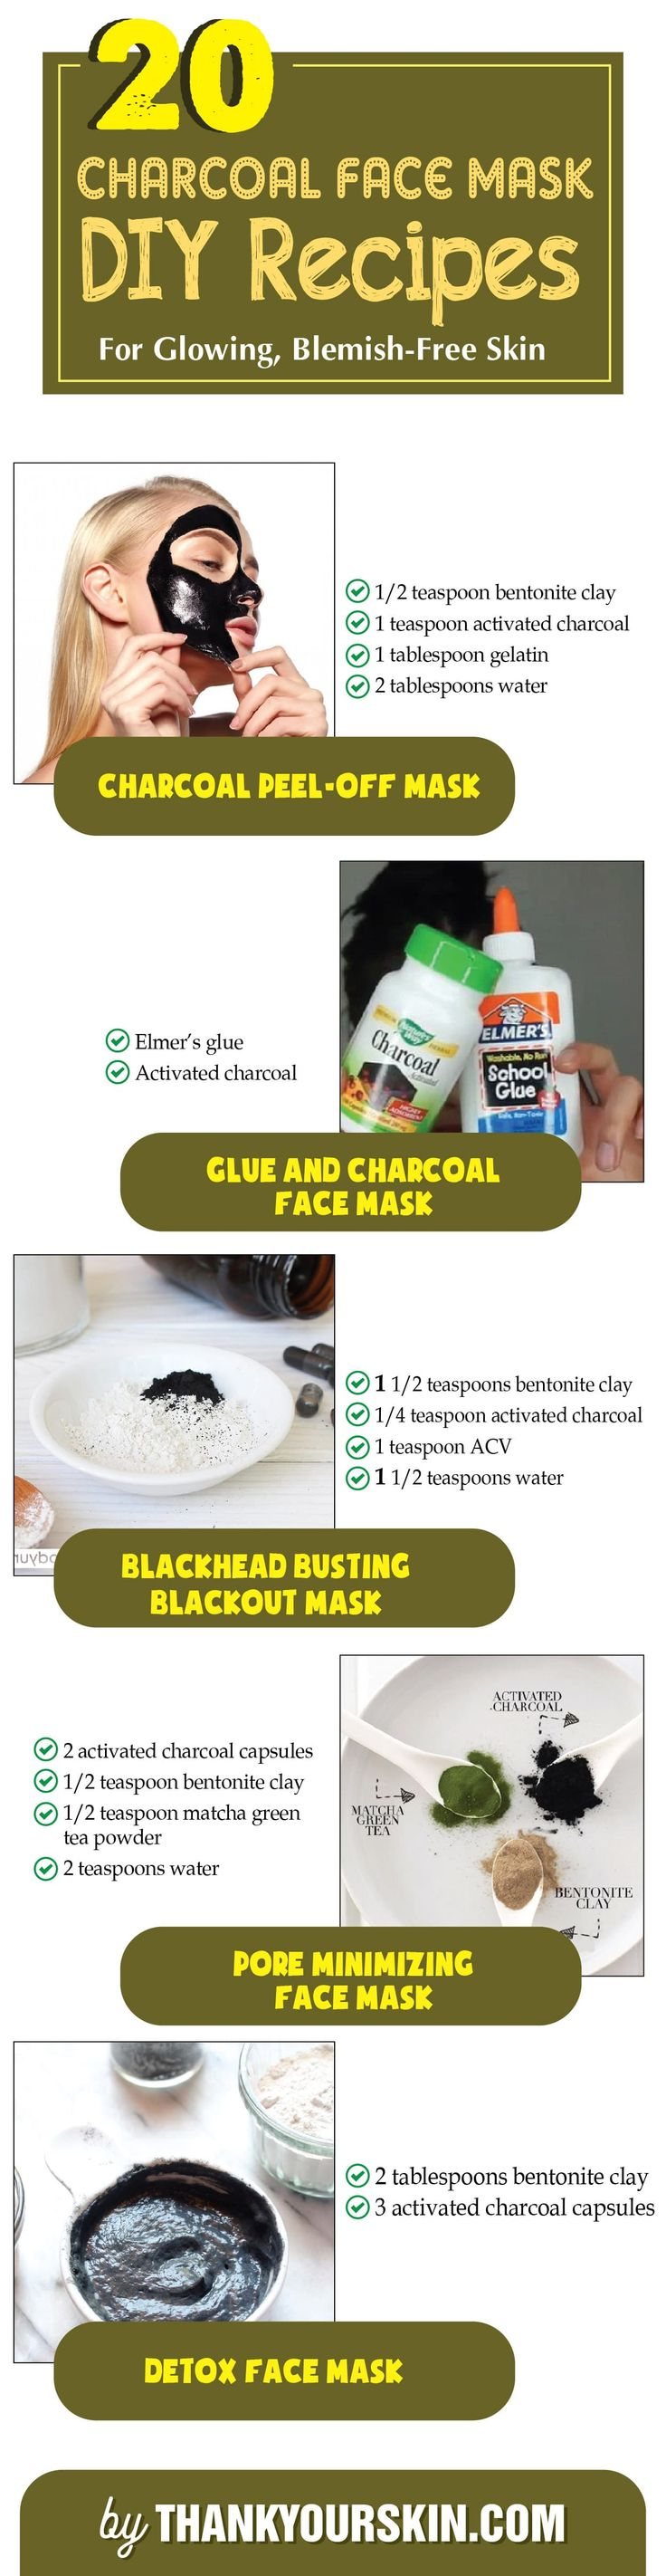 DIY Charcoal Face Mask - Easy homemade recipes for getting rid of blackheads with Activated Charcoal - Peel off - #CharcoalFaceMask #DIY #ThankYourSkin